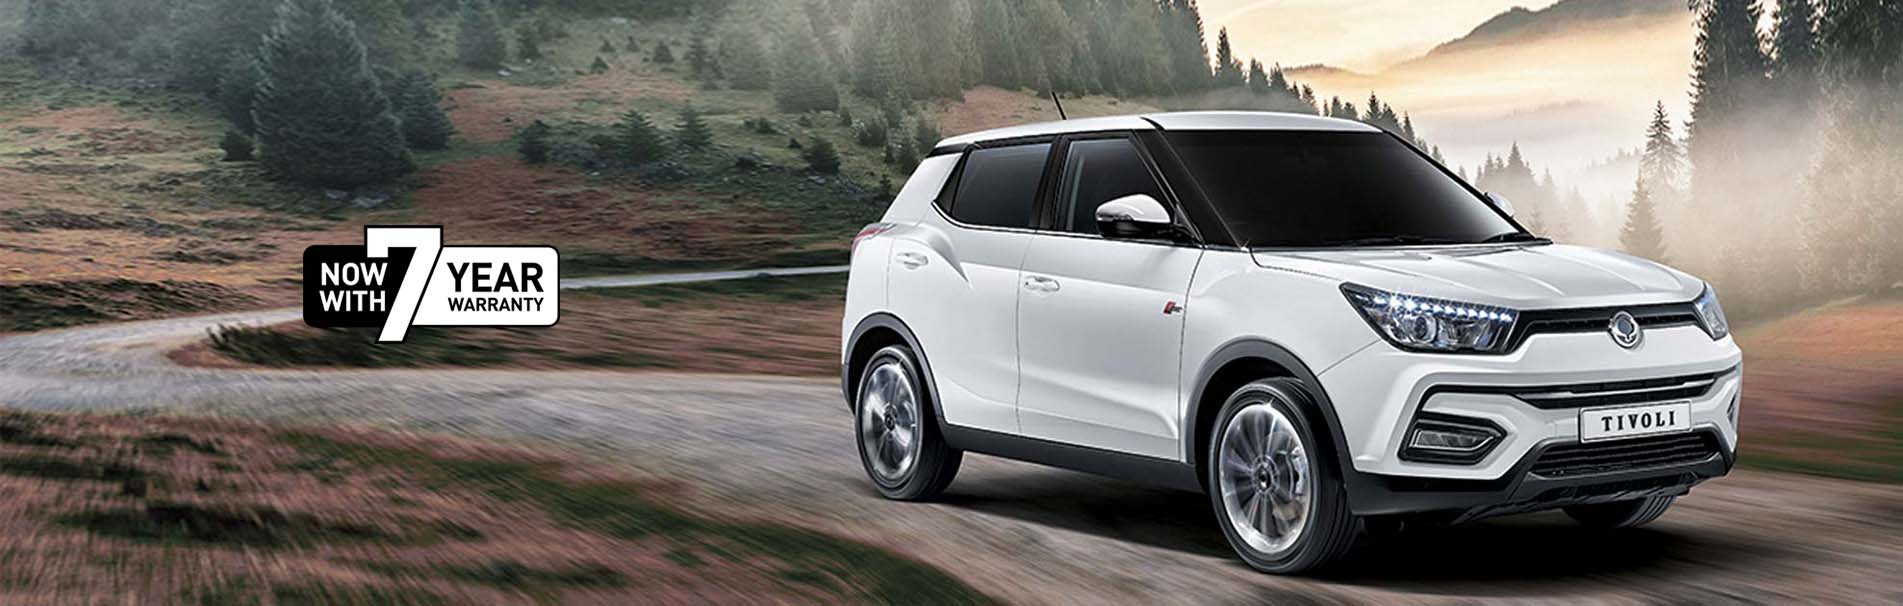 ssangyong-tivoli-5-years-0-percent-finance-7-years-warranty-sli